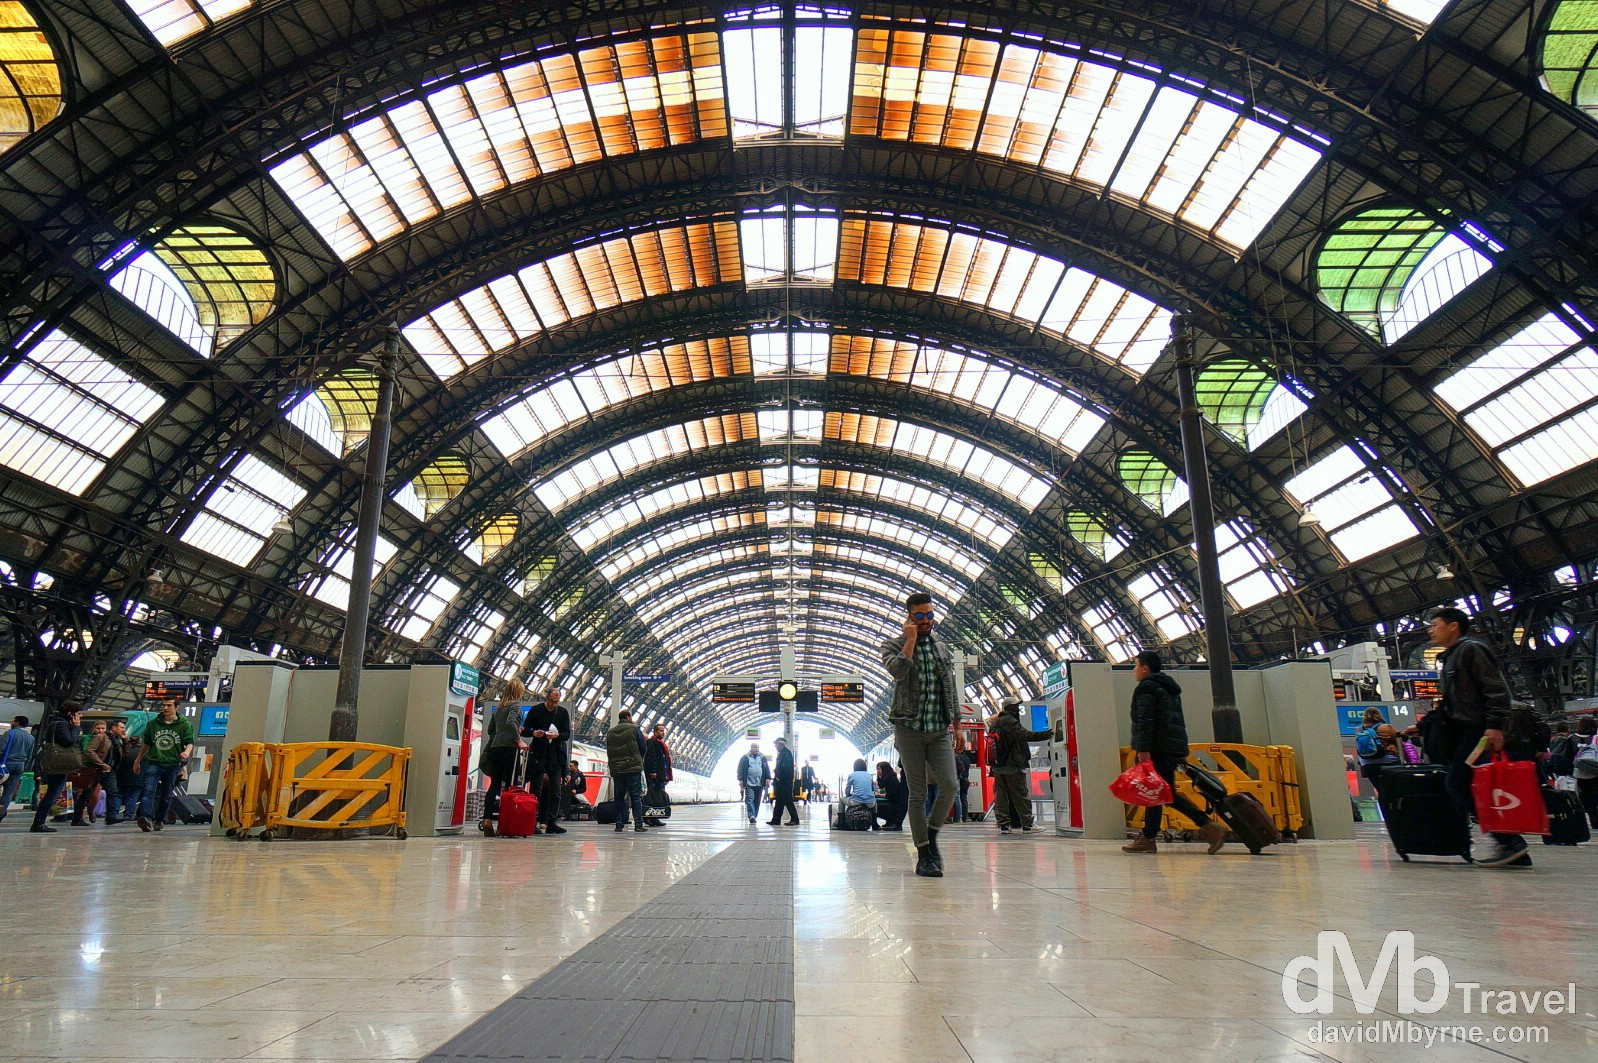 Milano Centrale - wide-angle territory. Milan, Lombardy, northern Italy. March 16th, 2013 (NEX-5r || SEL10-20mm || 10mm, 1/60sec, f/4.5, iso100)